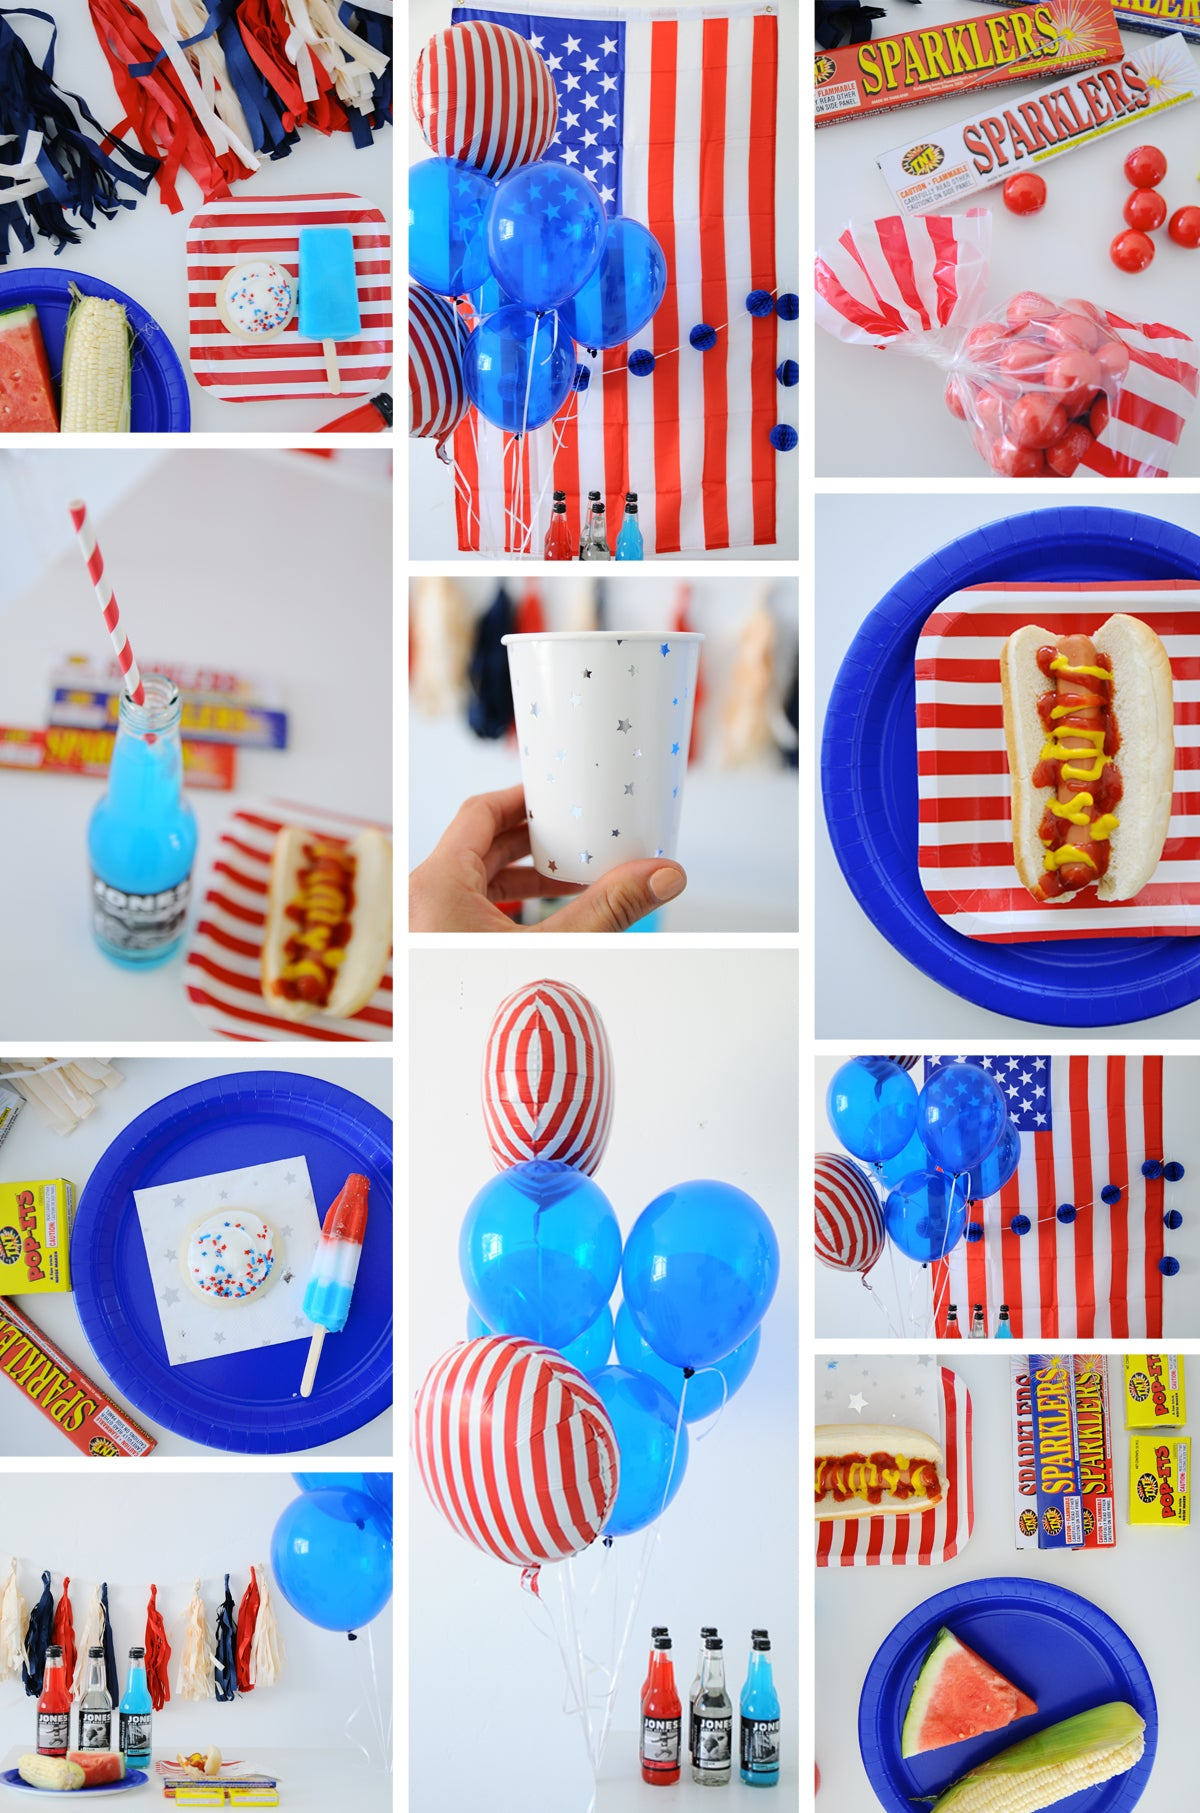 Stars & Stripes Party